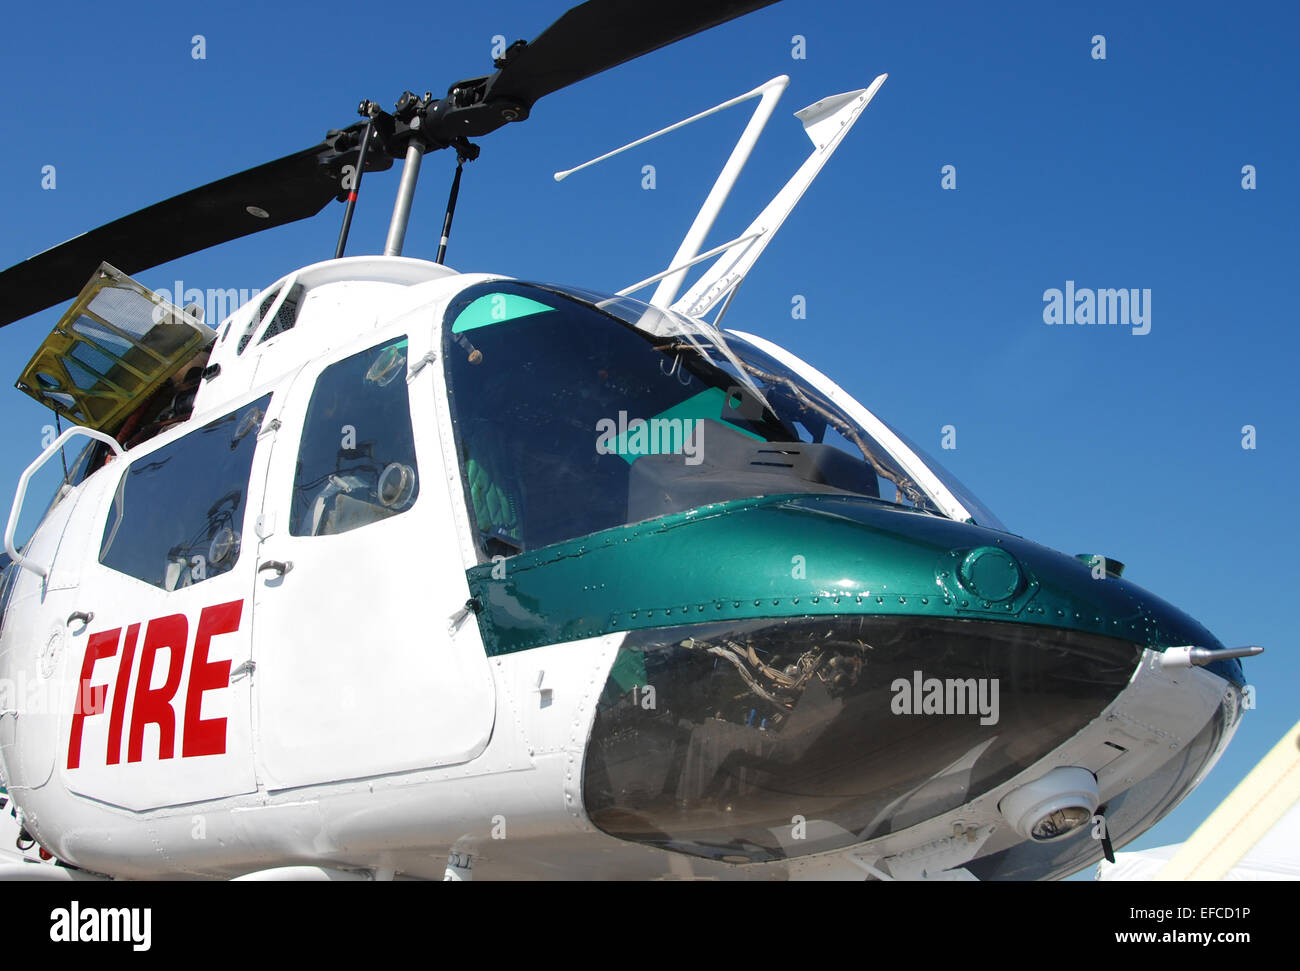 Firefighting helicopter closeup view - Stock Image